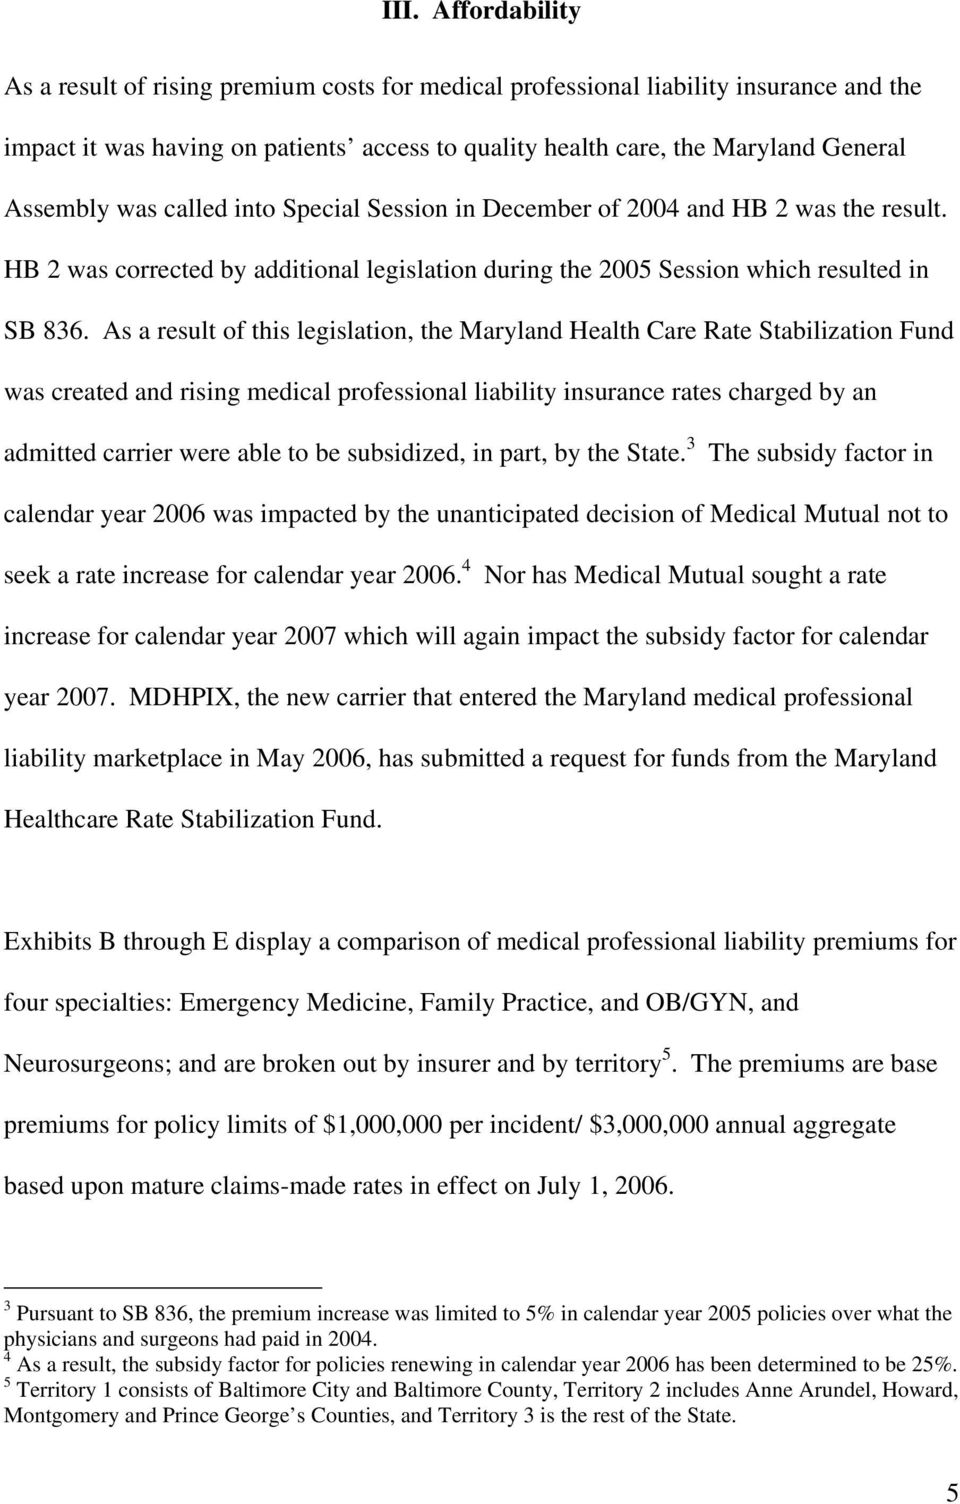 As a result of this legislation, the Maryland Health Care Rate Stabilization Fund was created and rising medical professional liability insurance rates charged by an admitted carrier were able to be